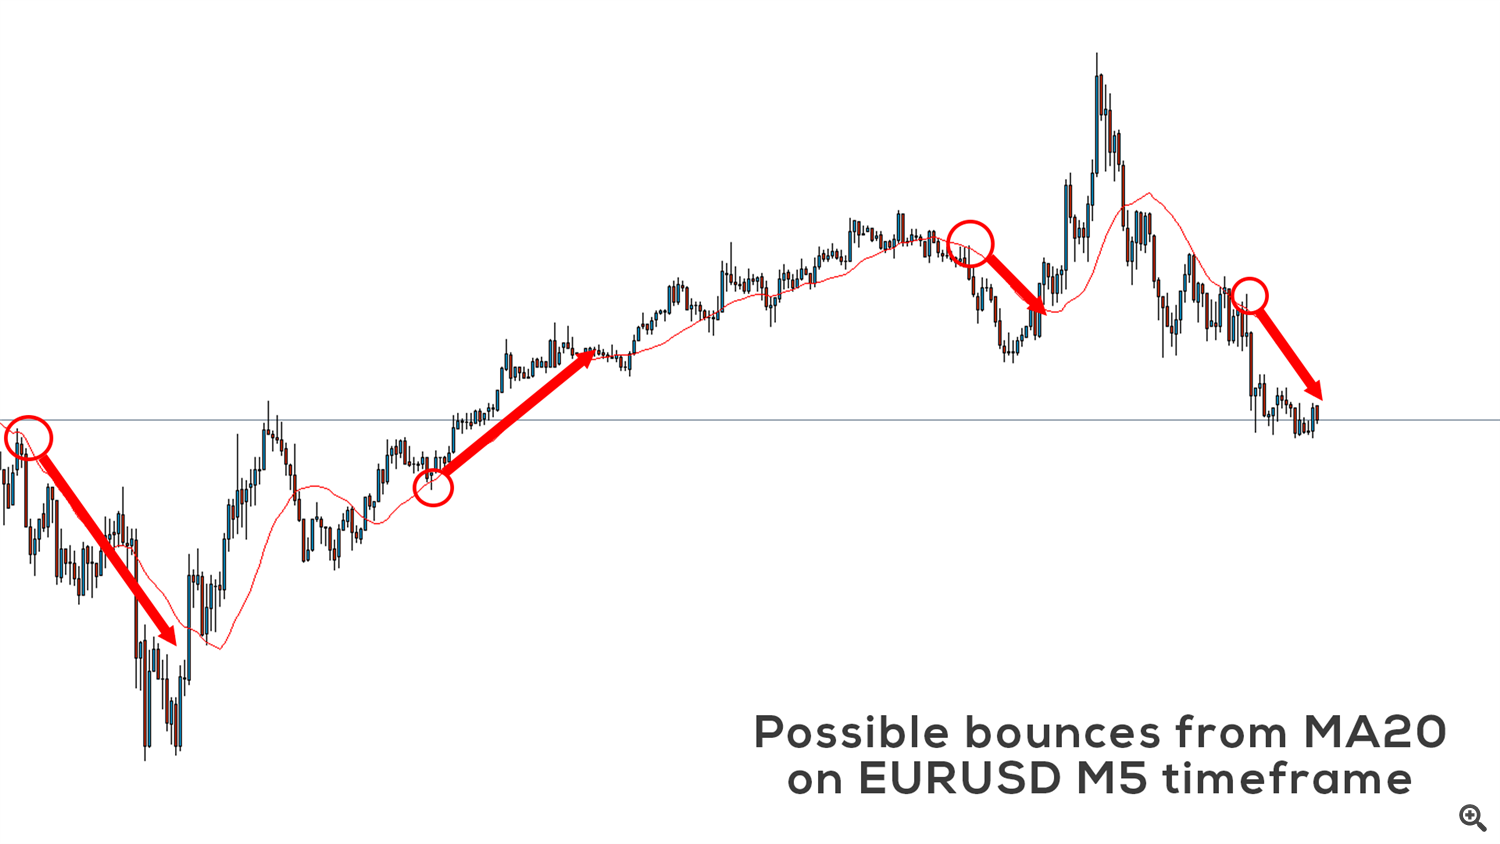 MA20 as dynamic support/resistance